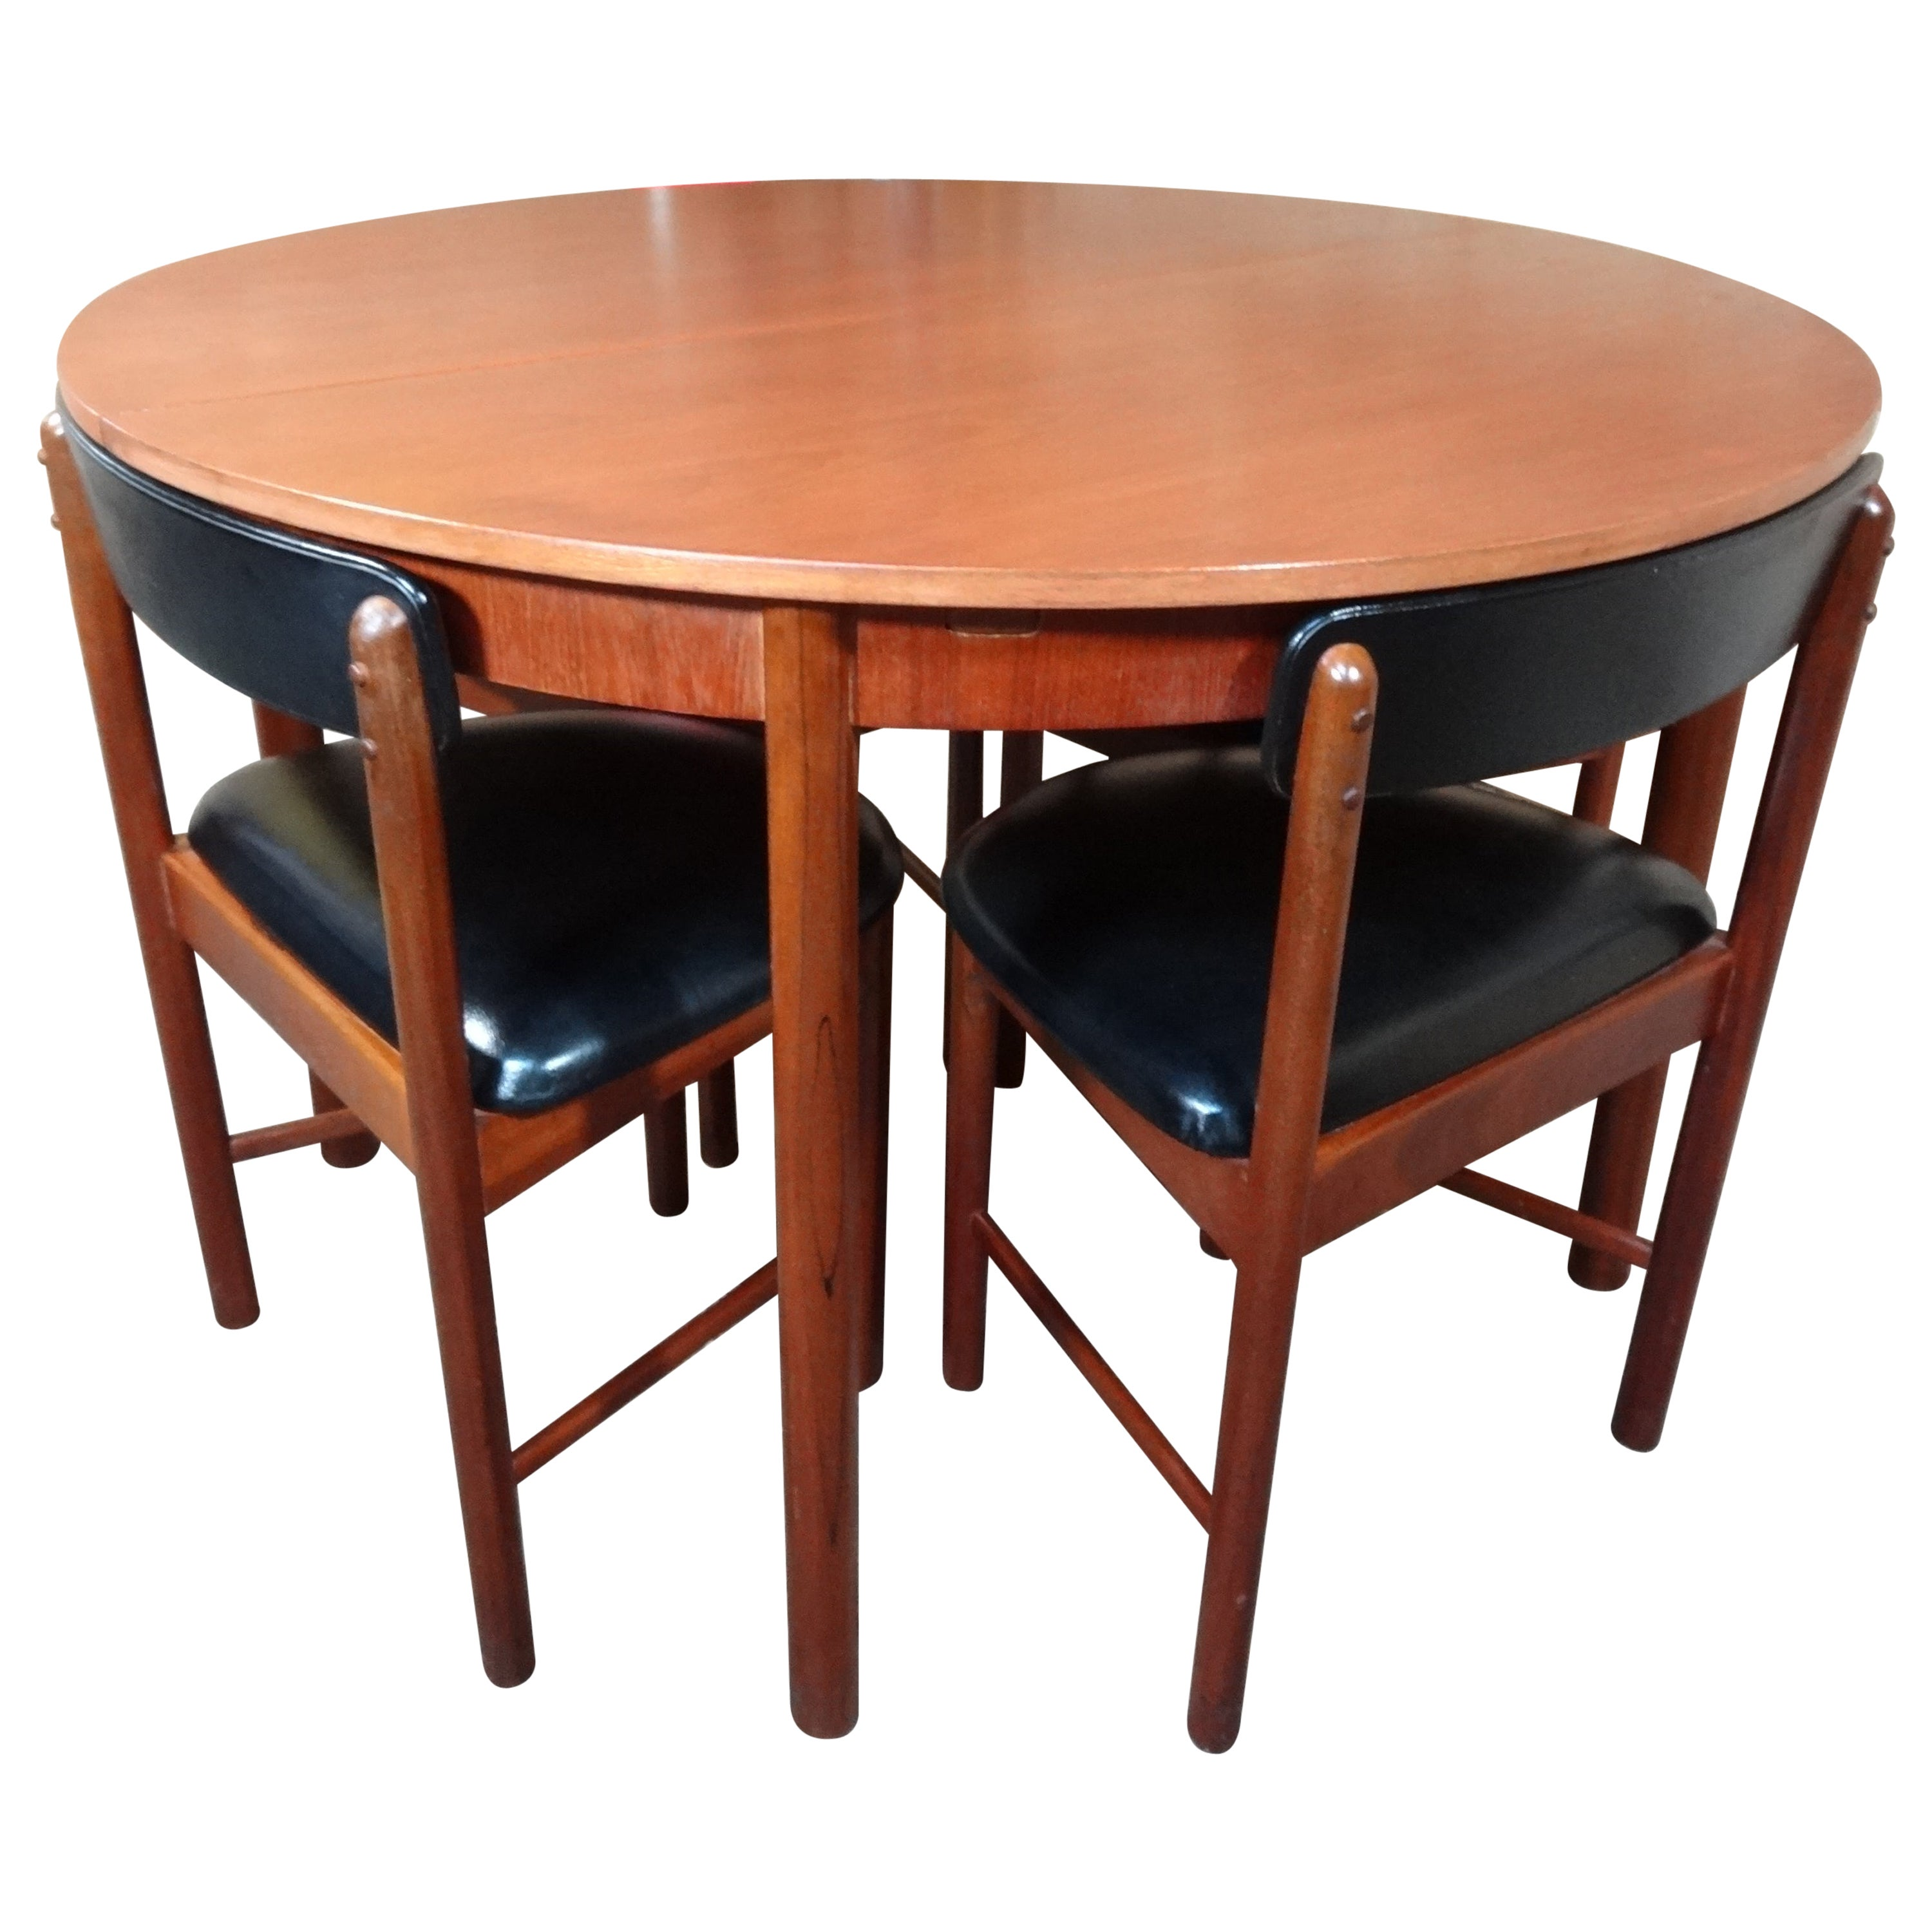 Vintage Teak Foldout Dining Table 4 Chairs By Tom Robertson For Mcintosh 1960 At 1stdibs